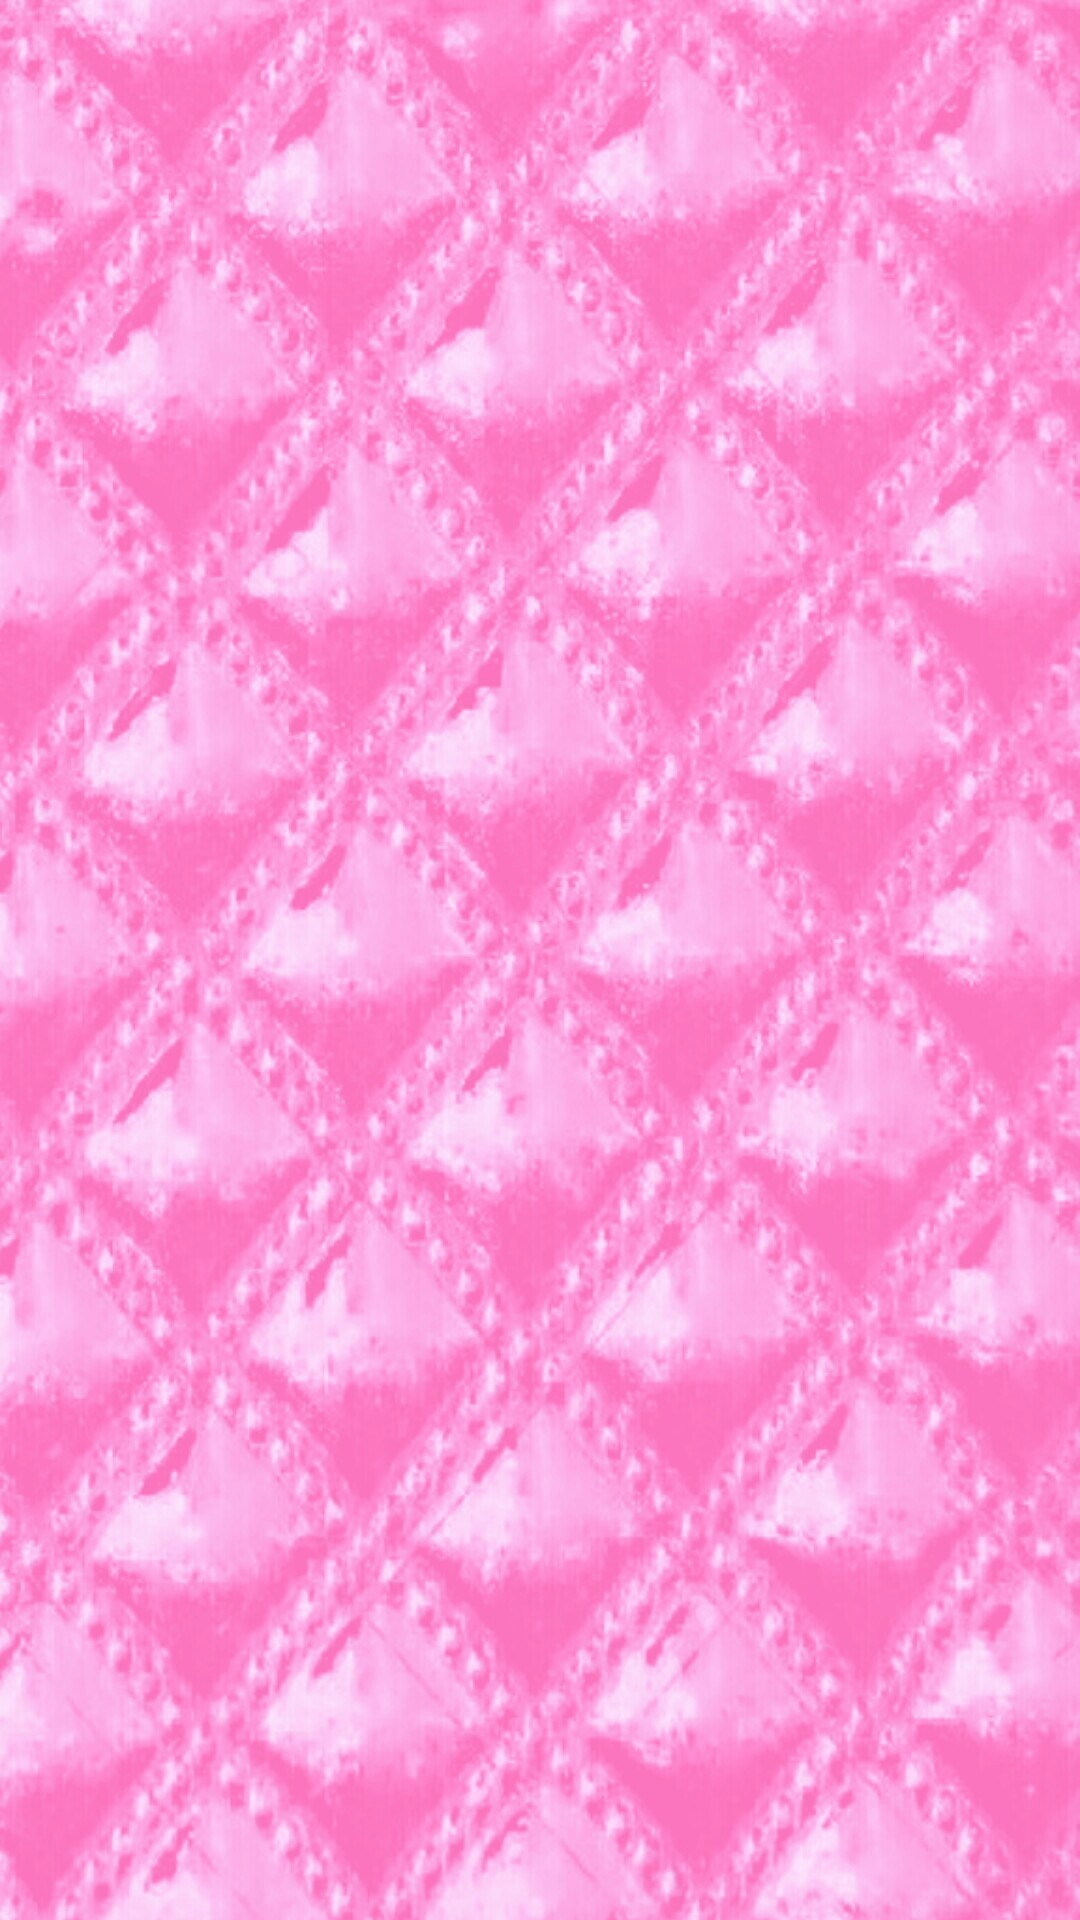 Pink upholstery